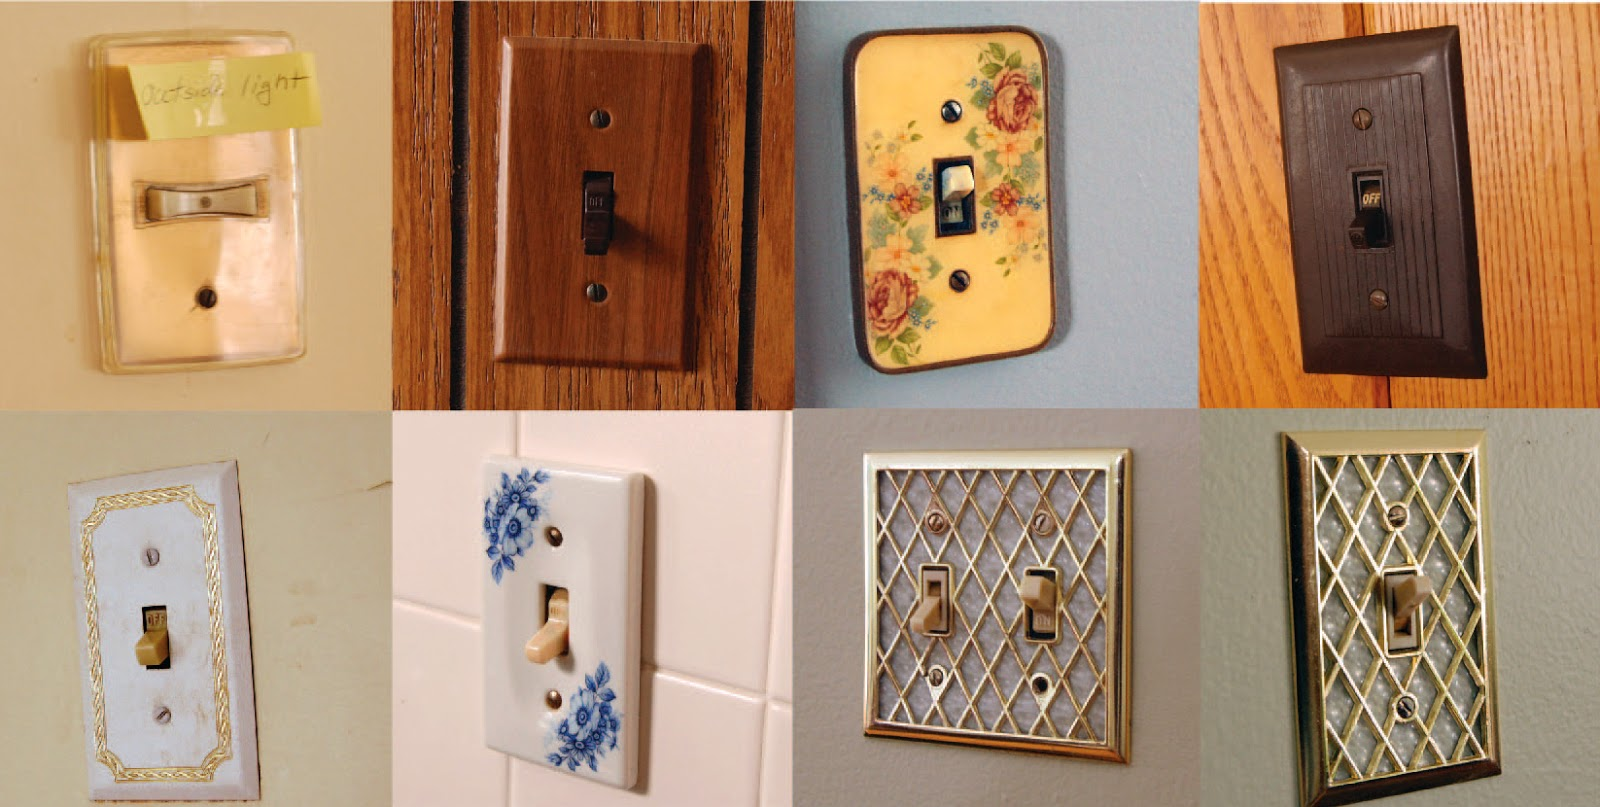 Surprising Replacing A Light Switch Jennblogshere Download Free Architecture Designs Meptaeticmadebymaigaardcom